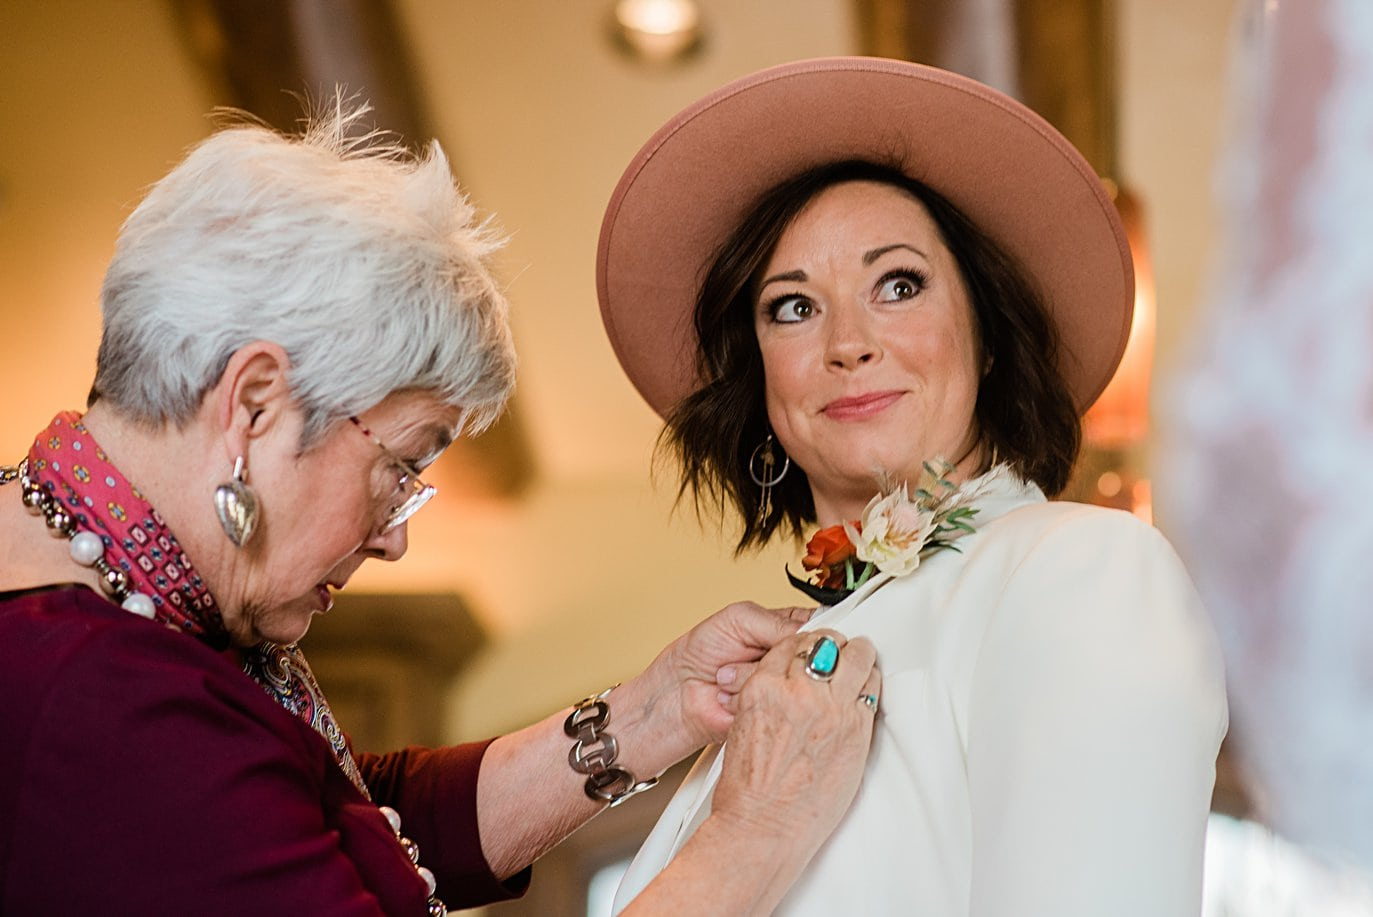 bride gets boutonniere pinned on white suit on wedding day at Boreas Pass microwedding by Breckenridge wedding photographer Jennie Crate